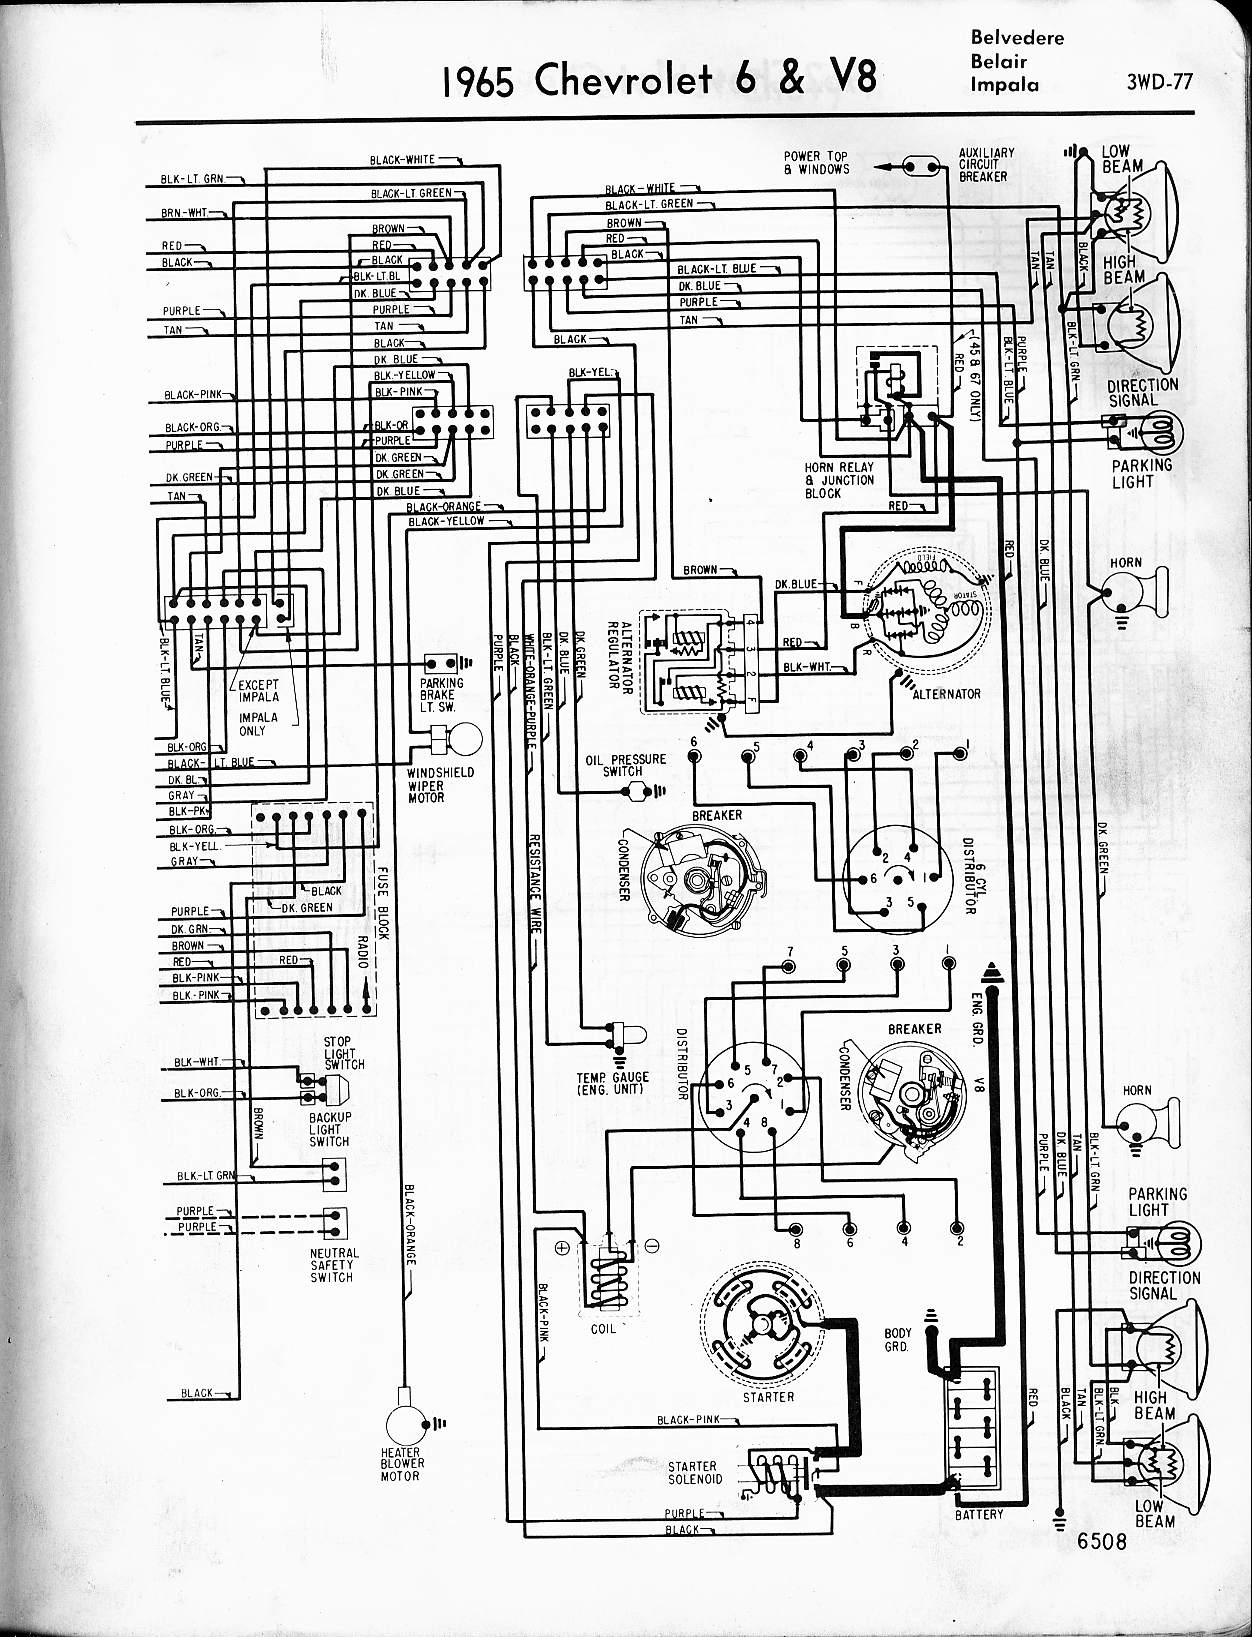 MWireChev65_3WD 077 chevy diagrams 1970 chevelle dash wiring diagram at aneh.co